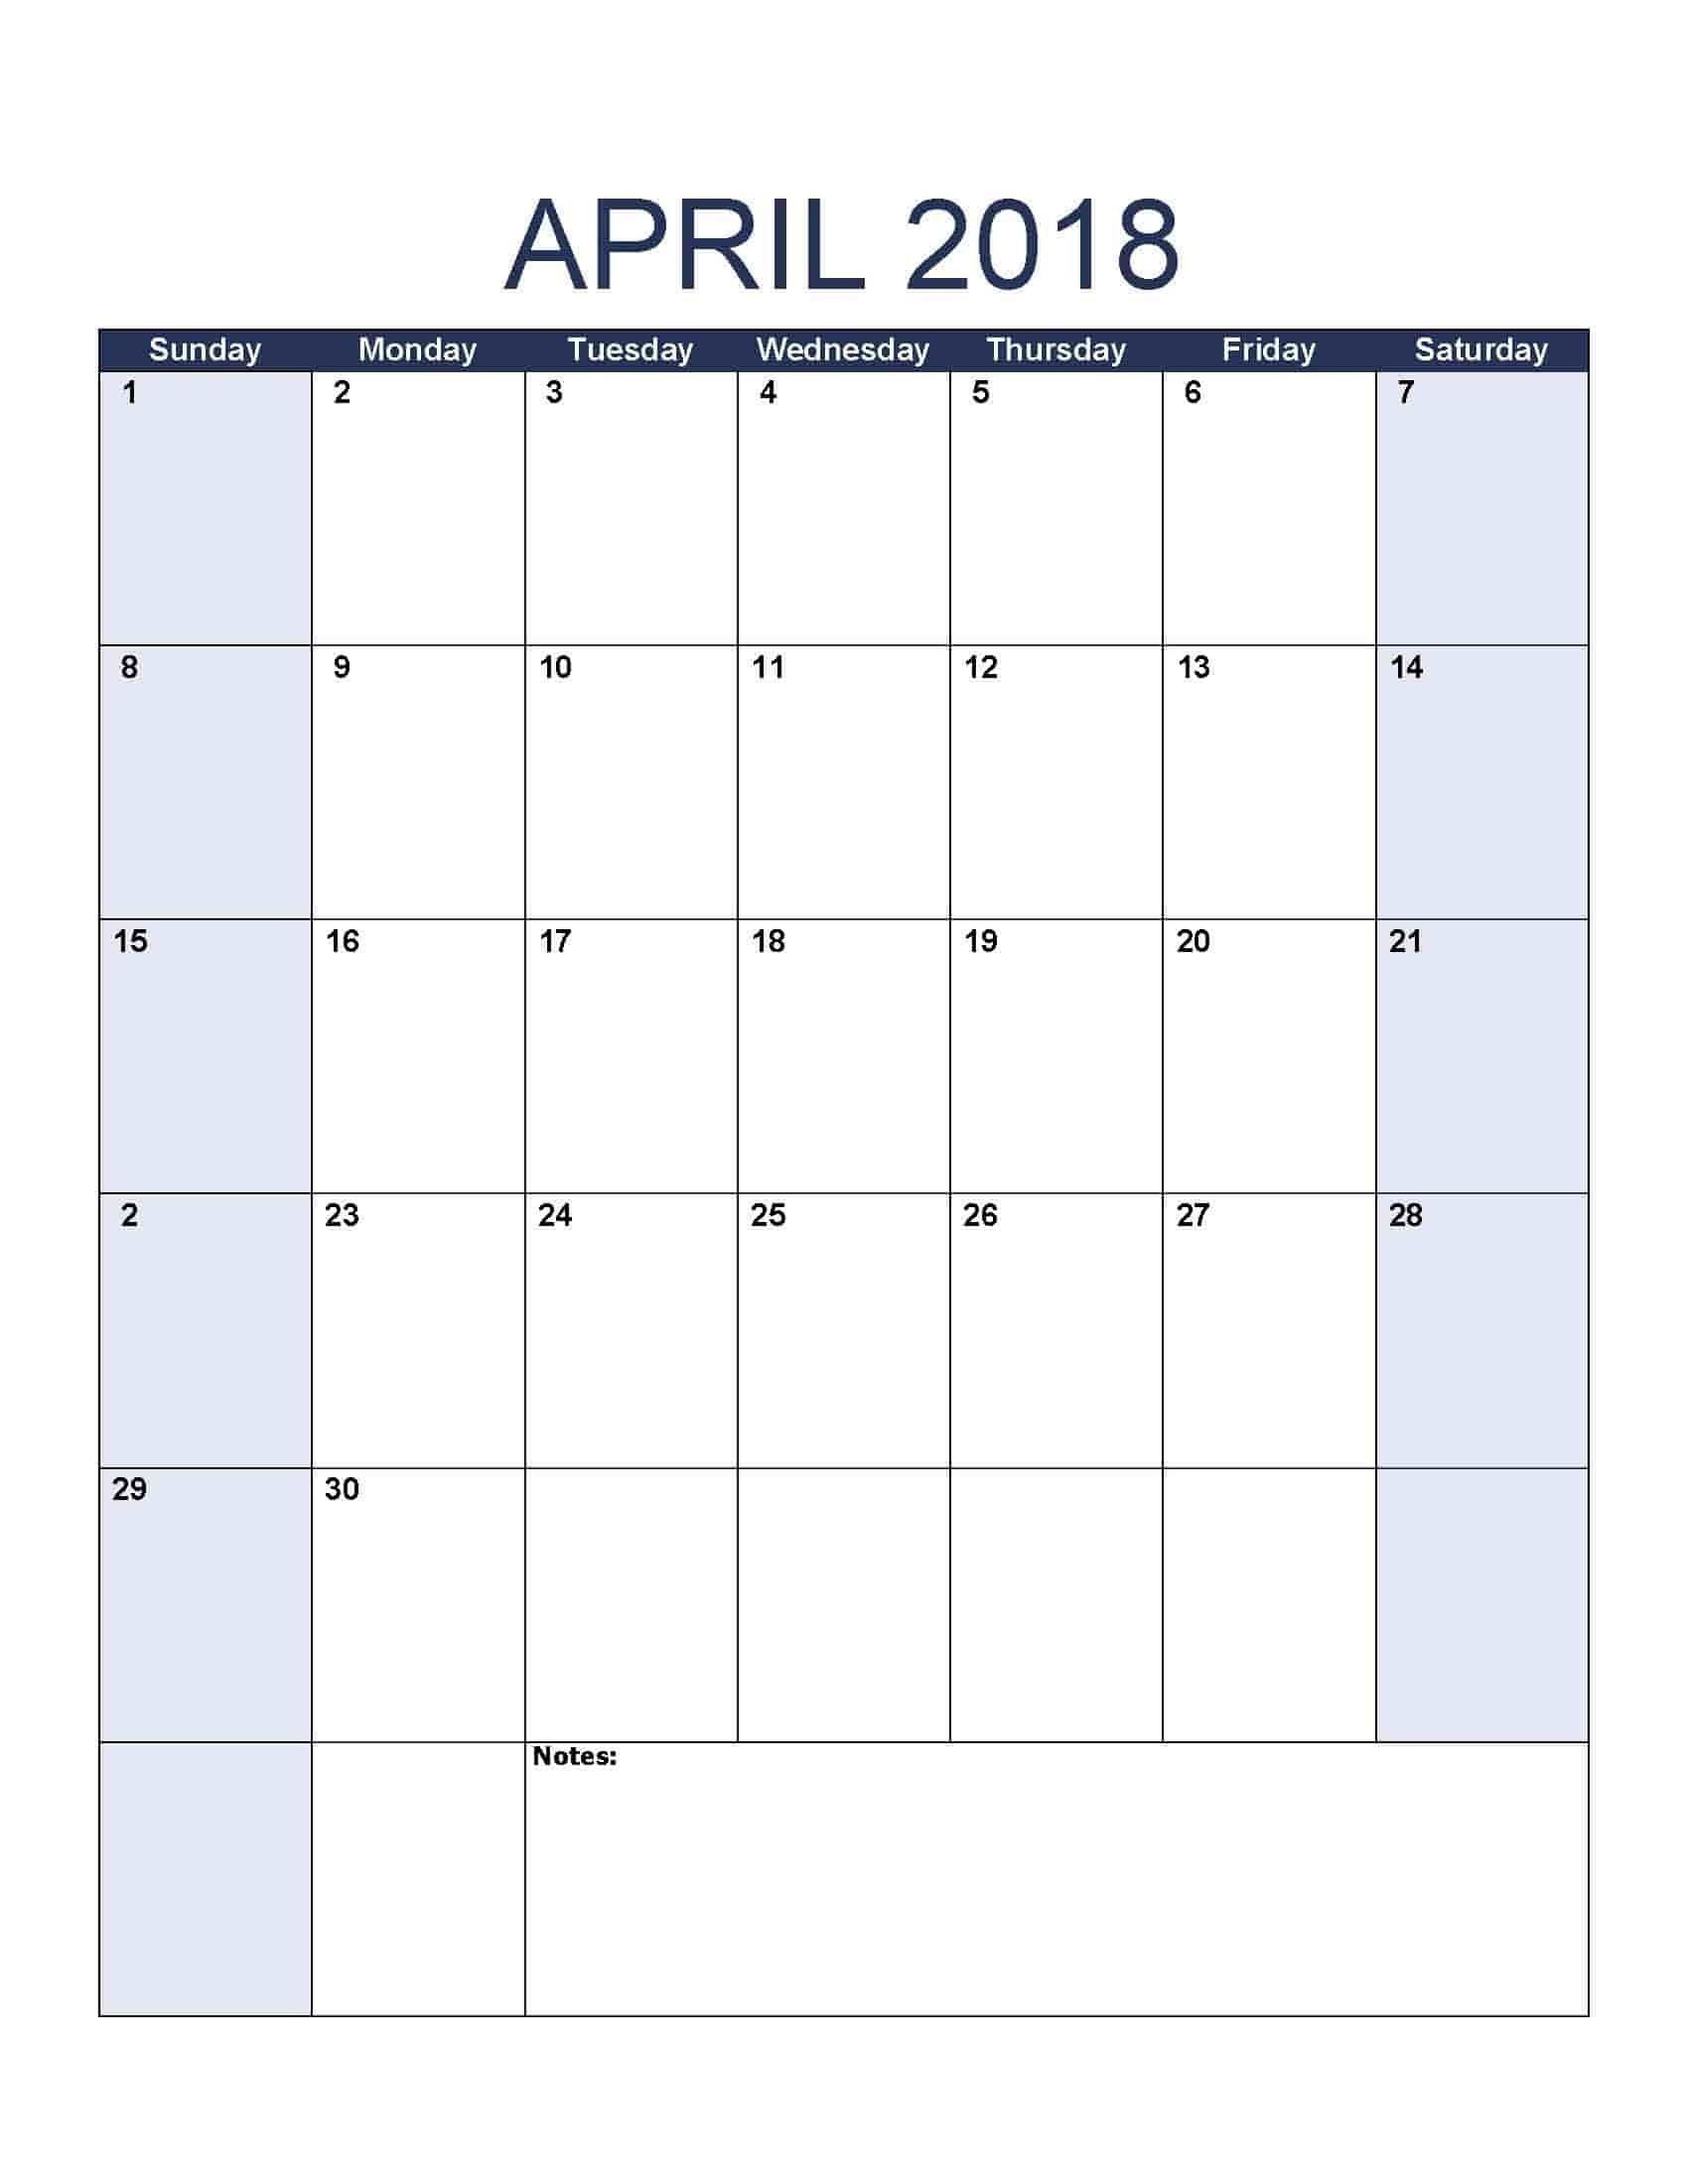 April 2018 Calendar - Free, Printable Calendar Templates